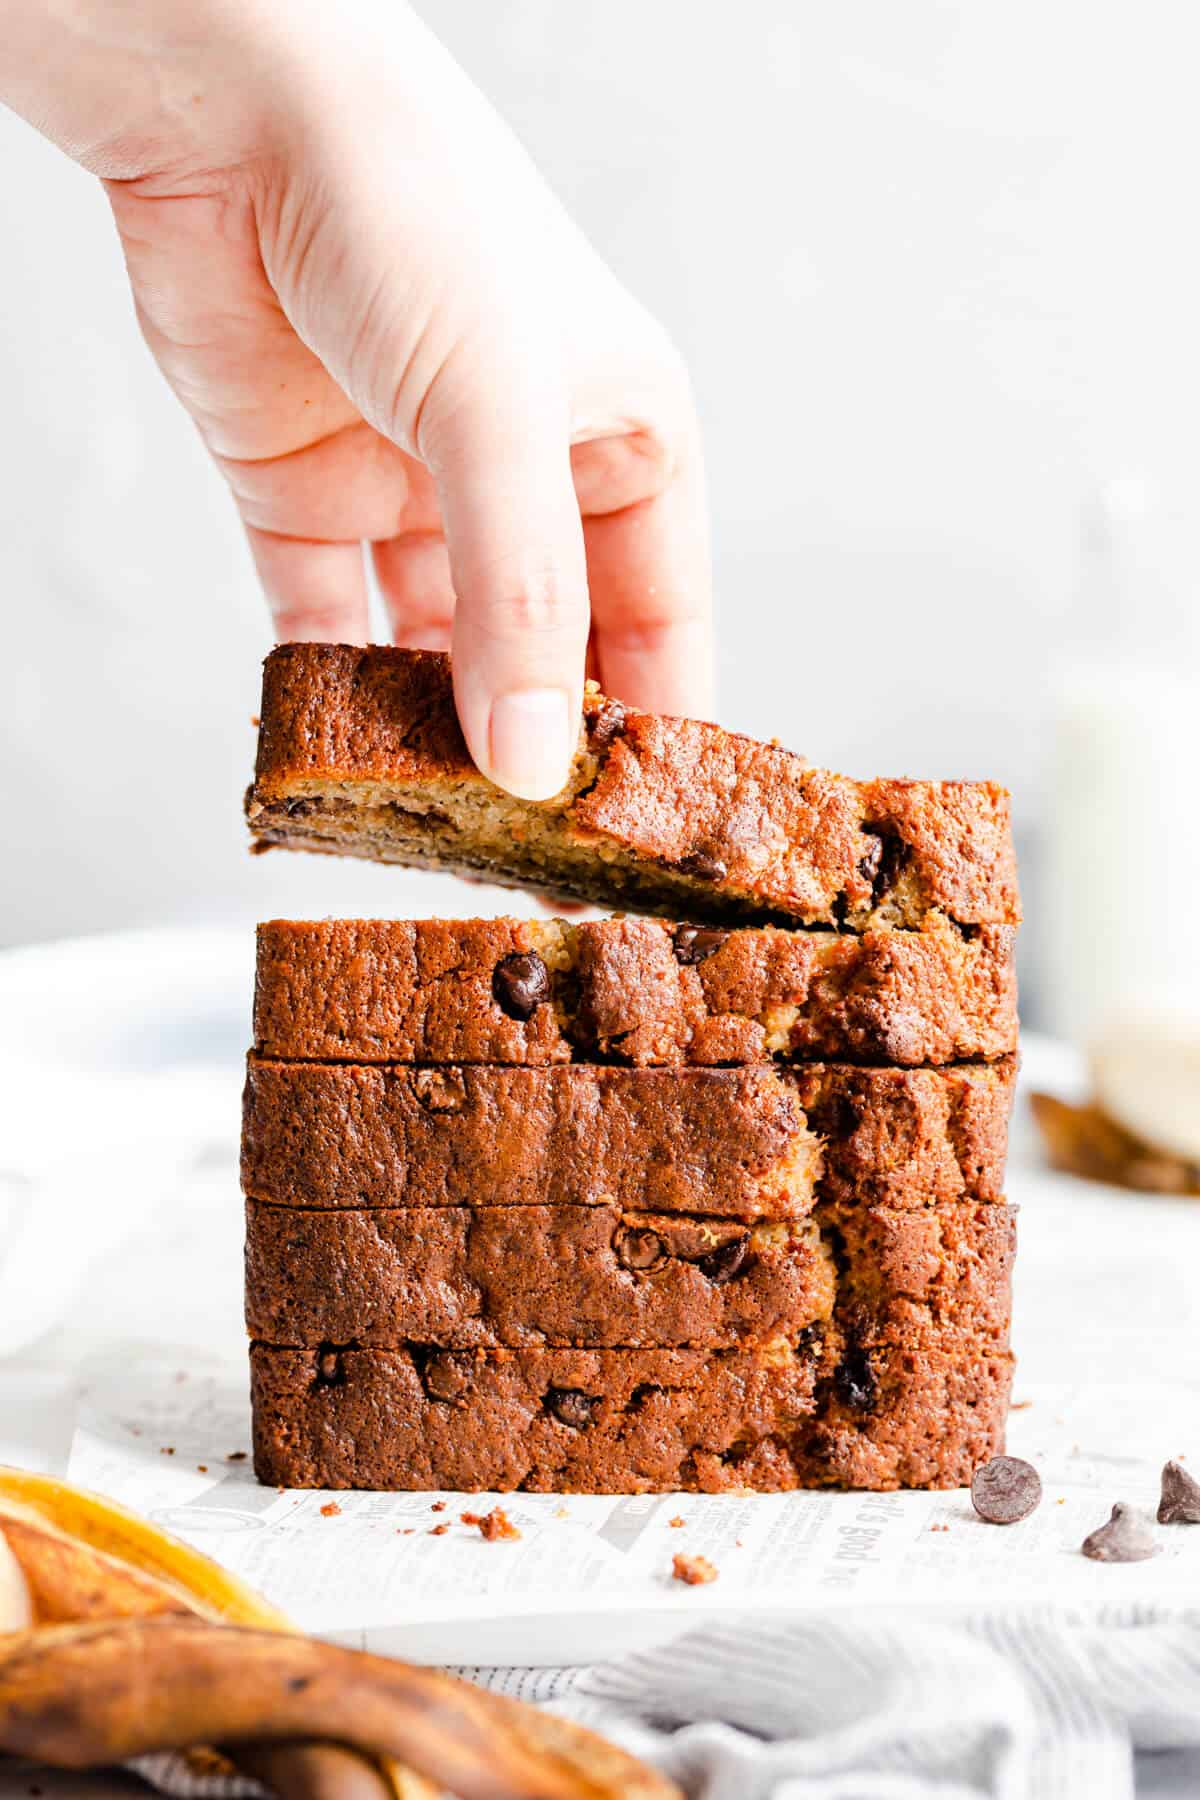 straight-ahead shot of a person taking a slice of banana bread from a stack of slices